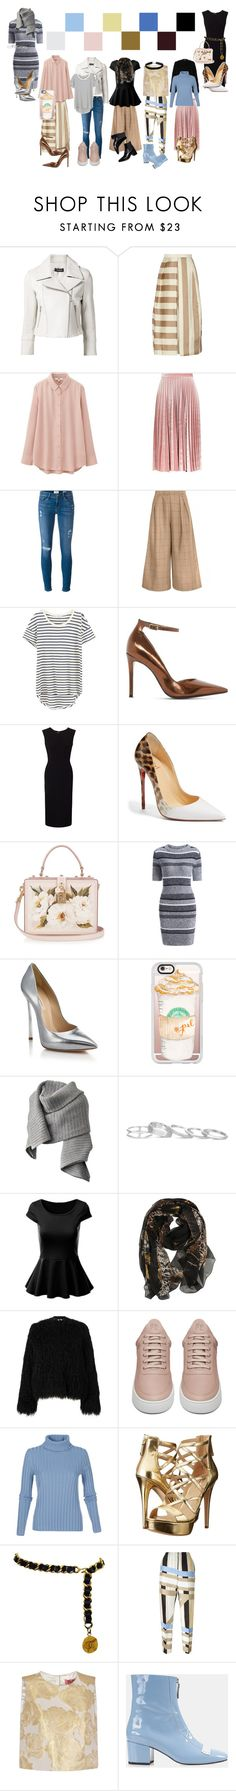 """""""Styling with suggested #37: Untitled"""" by sydsydrox ❤ liked on Polyvore featuring Yigal AzrouÃ«l, TIBI, Uniqlo, Topshop, Frame Denim, Splendid, Dune, Roland Mouret, Christian Louboutin and Dolce&Gabbana"""